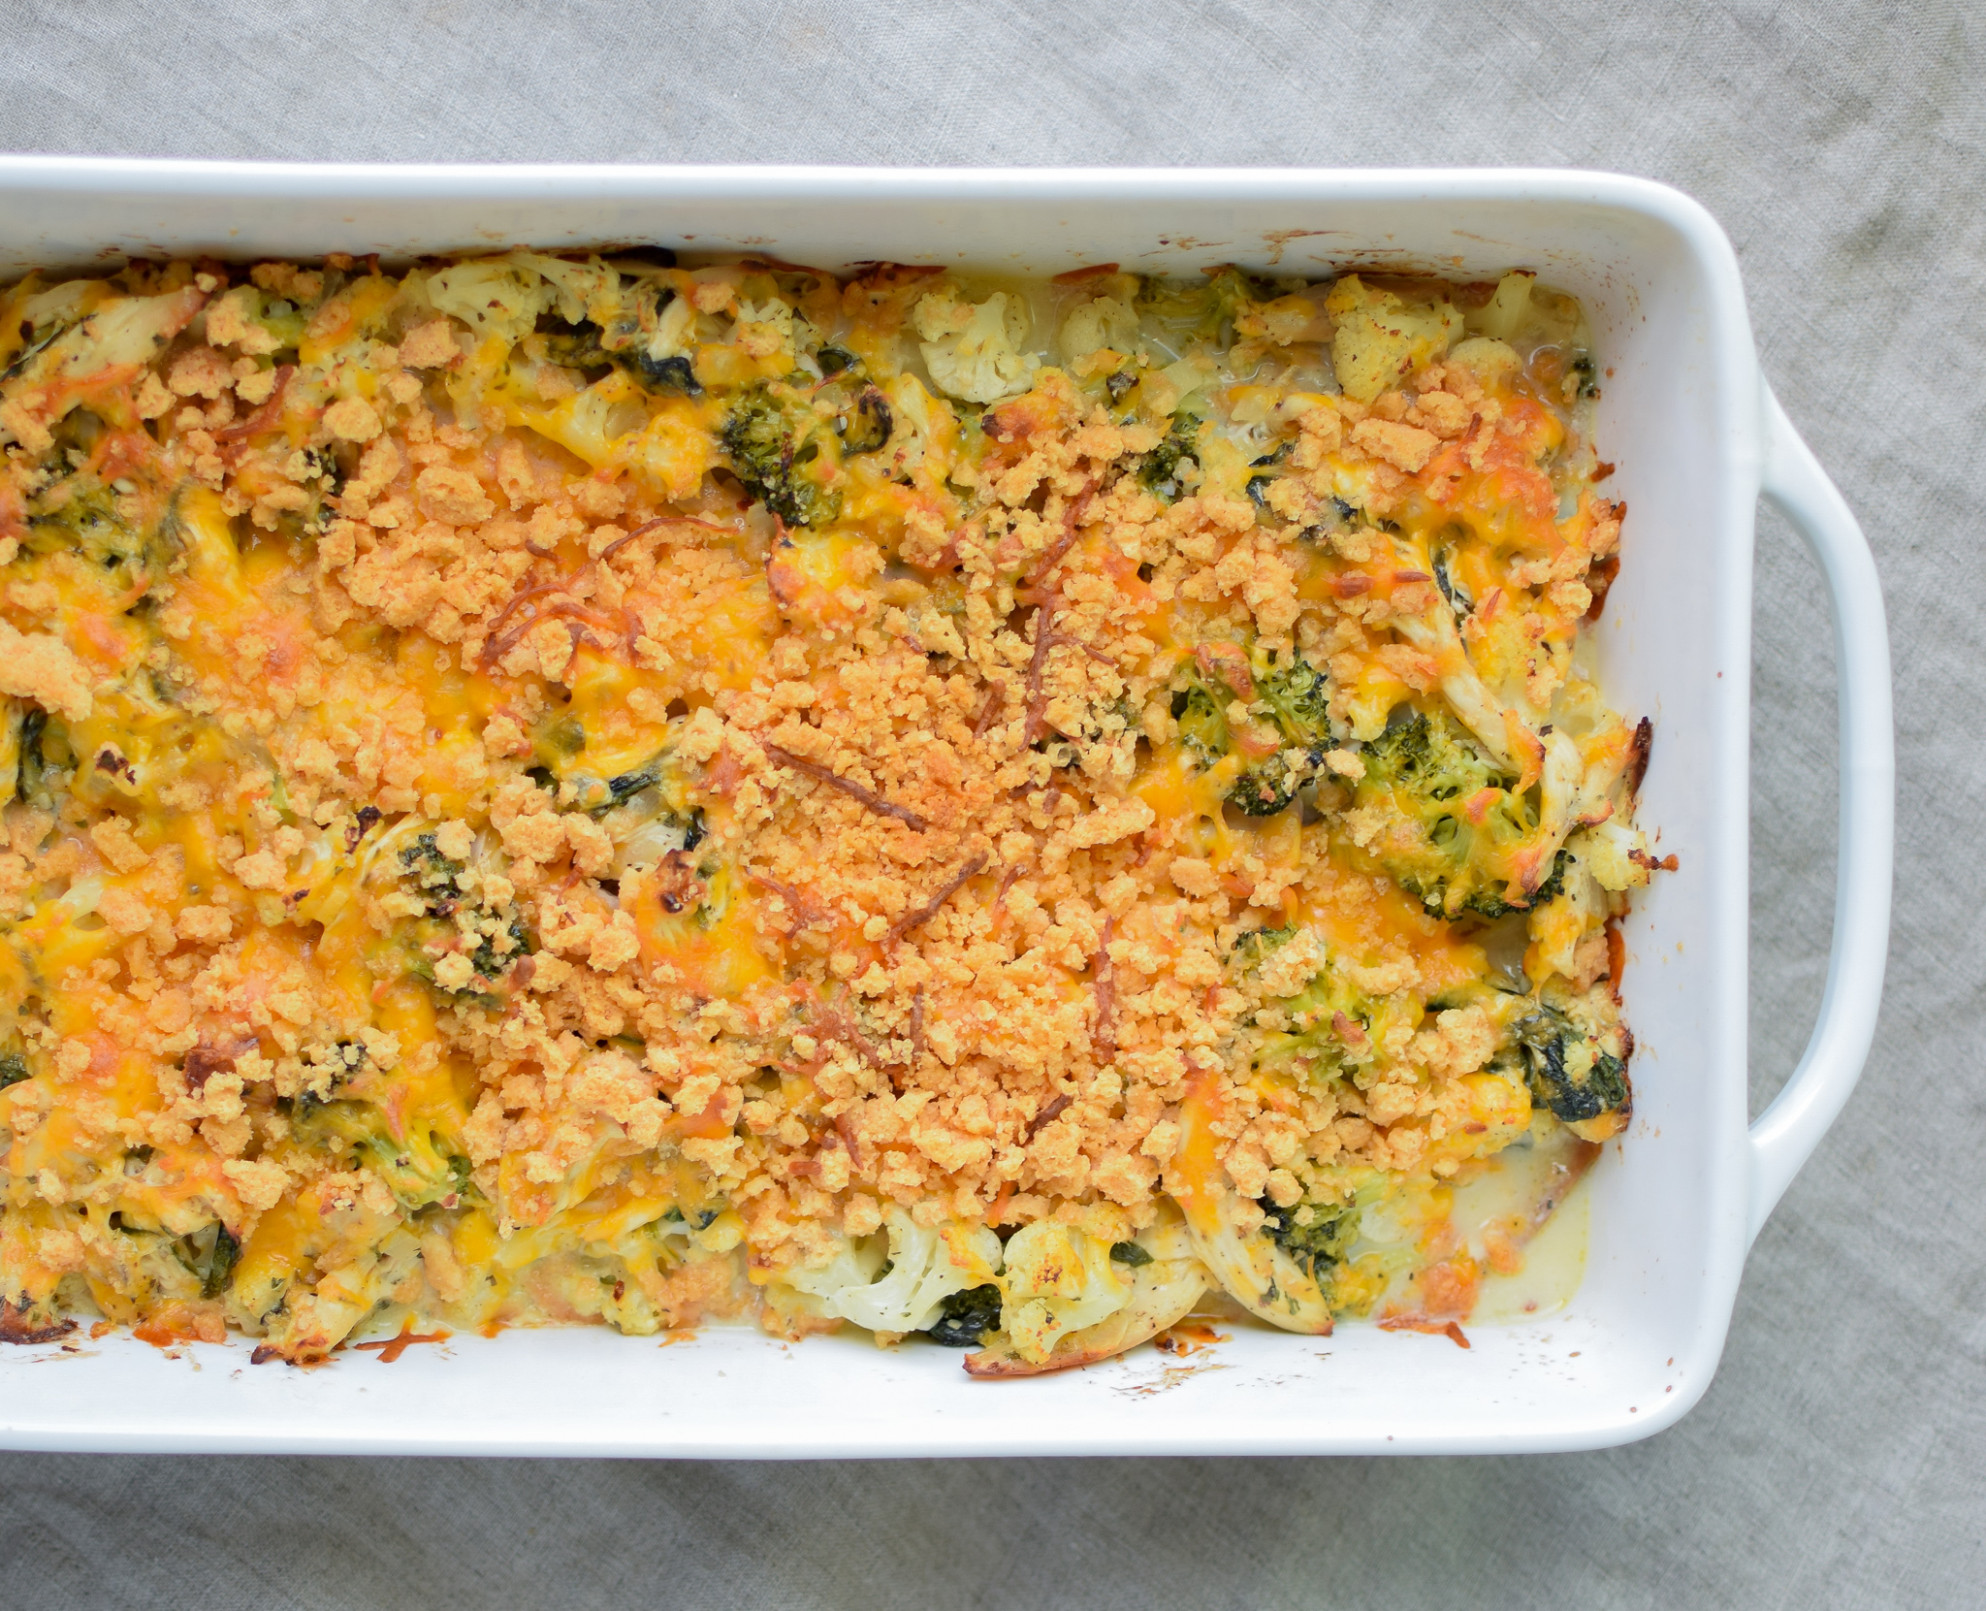 Veggie Loaded Rotisserie Chicken Casserole - Project Meal Plan - recipes vegetable casseroles healthy